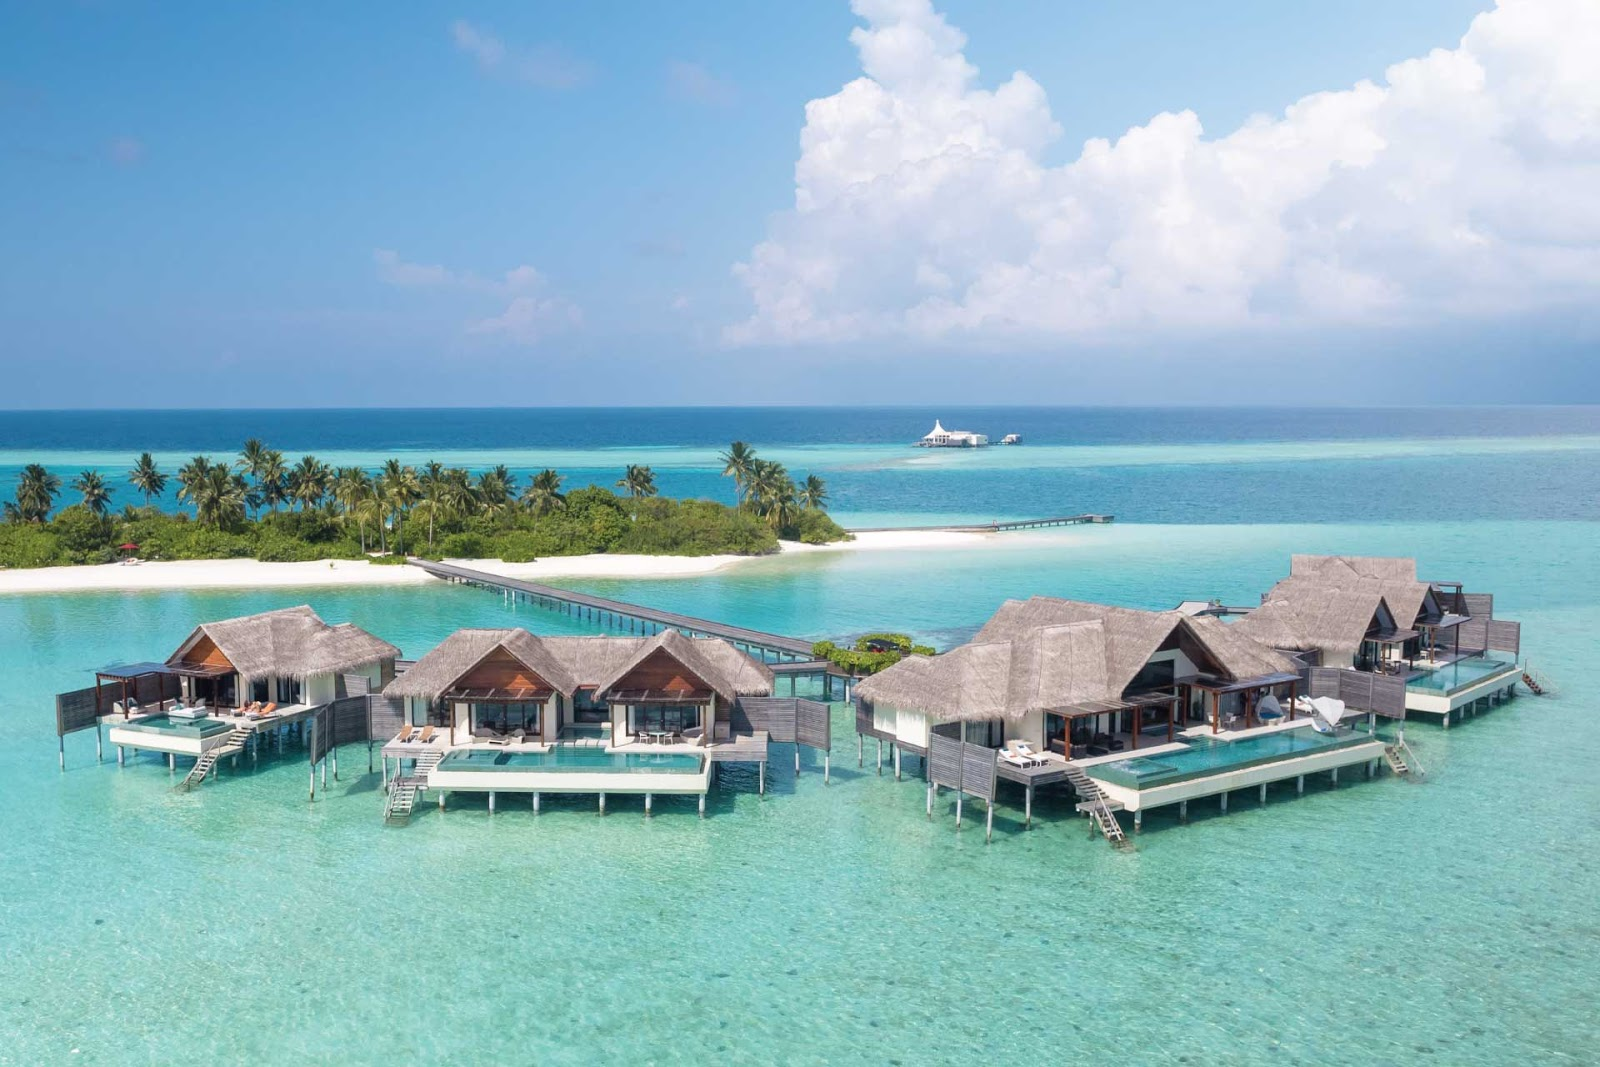 4 resort bungalows in the Maldives